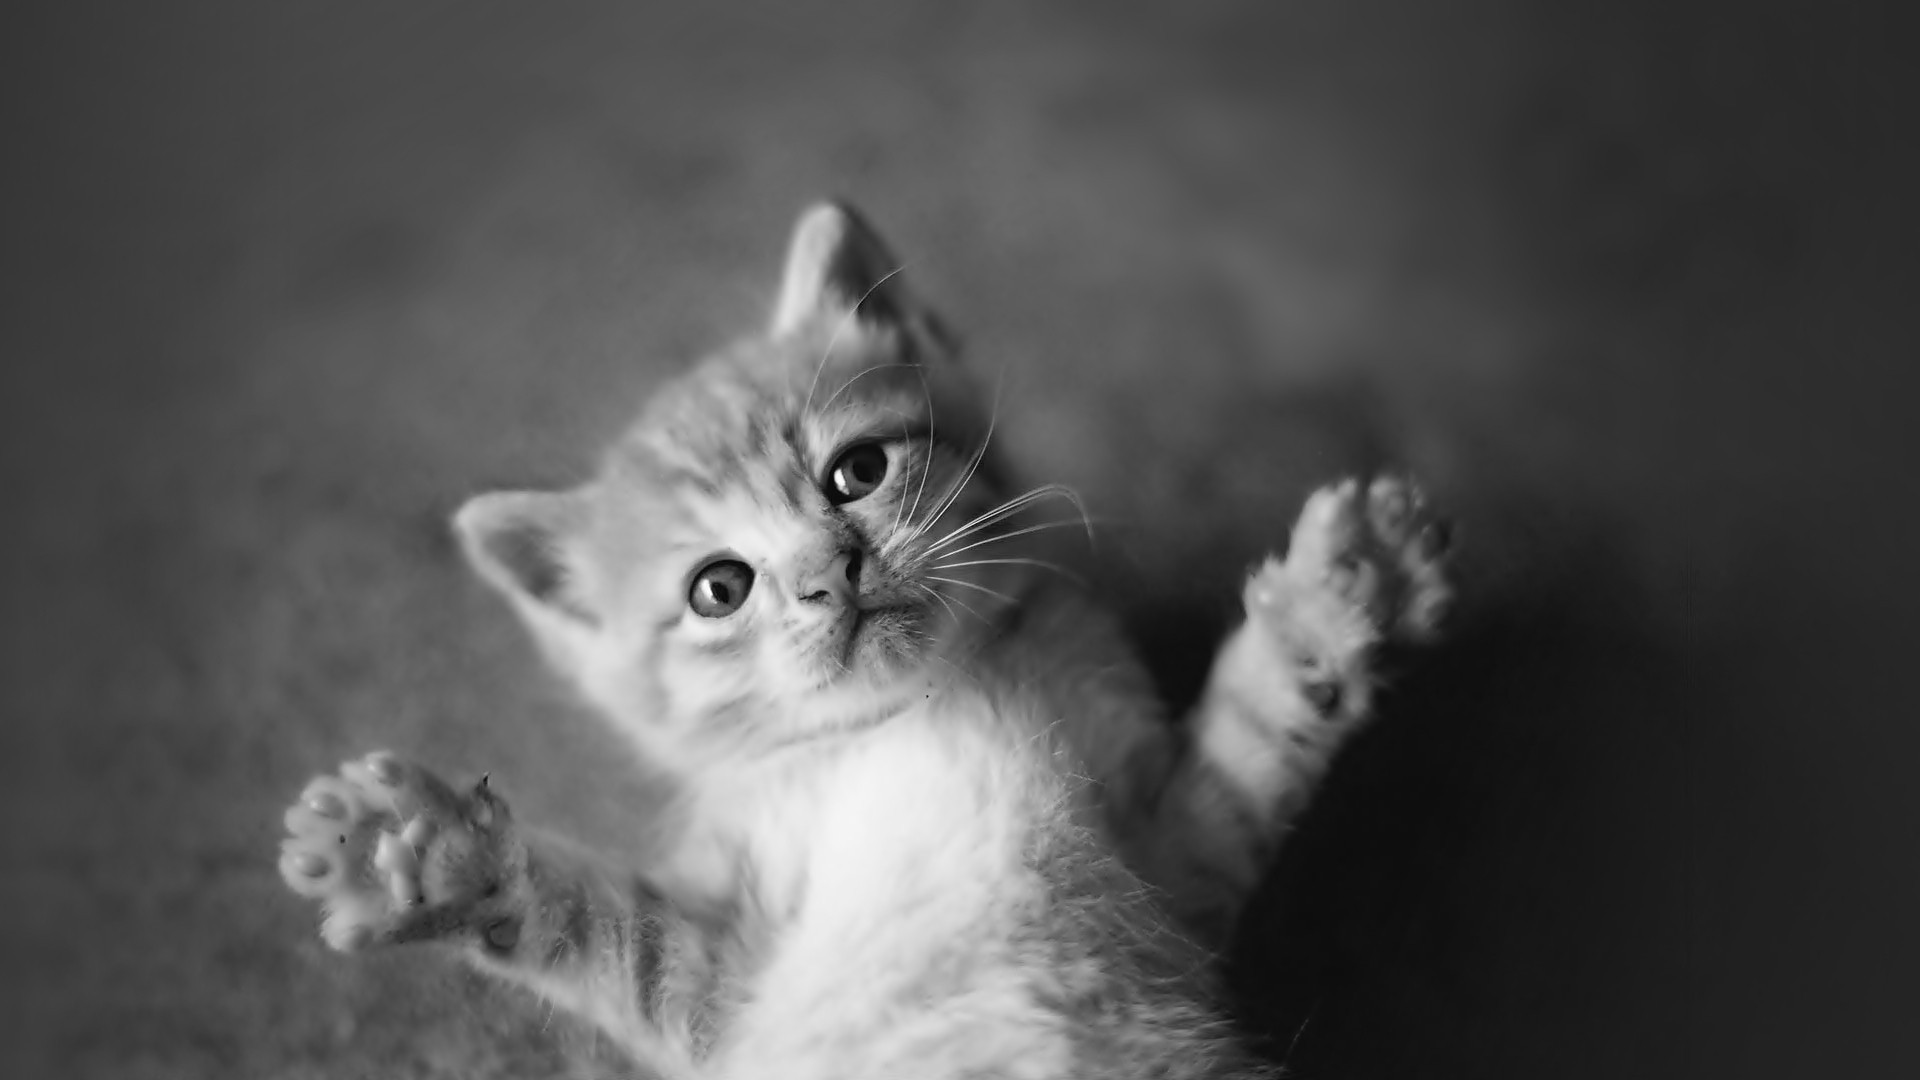 black and white cat wallpaper ·①